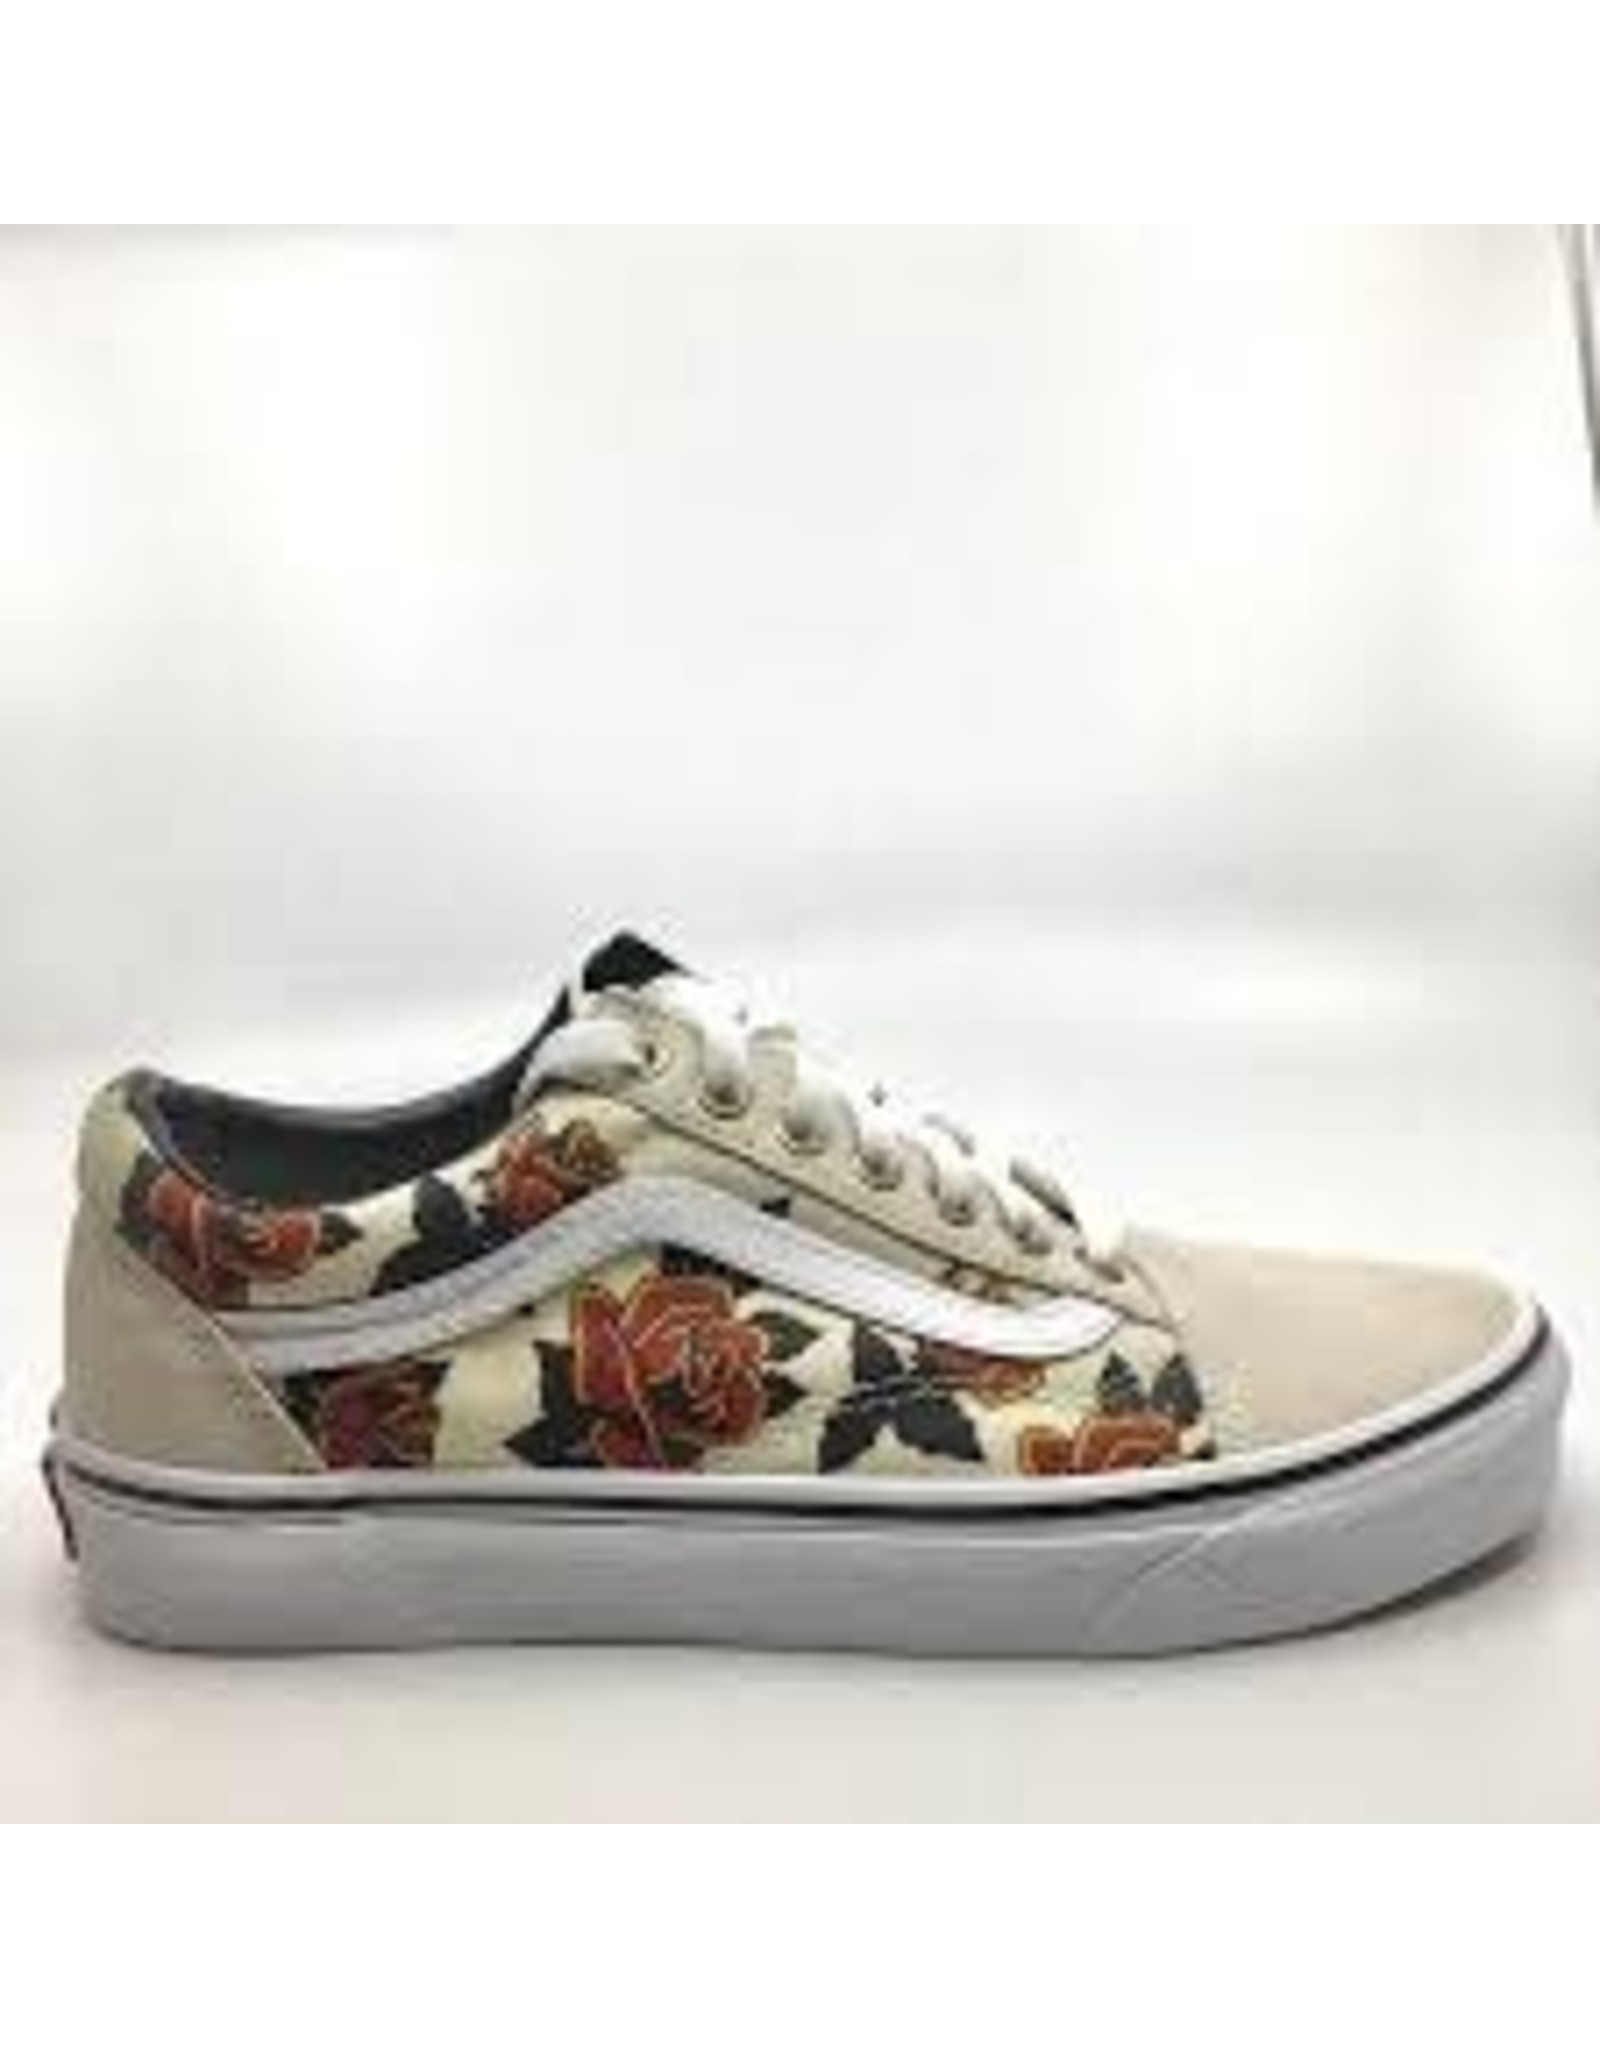 VANS VANS OLD SKOOL MARY RAND TURTLED ROSES